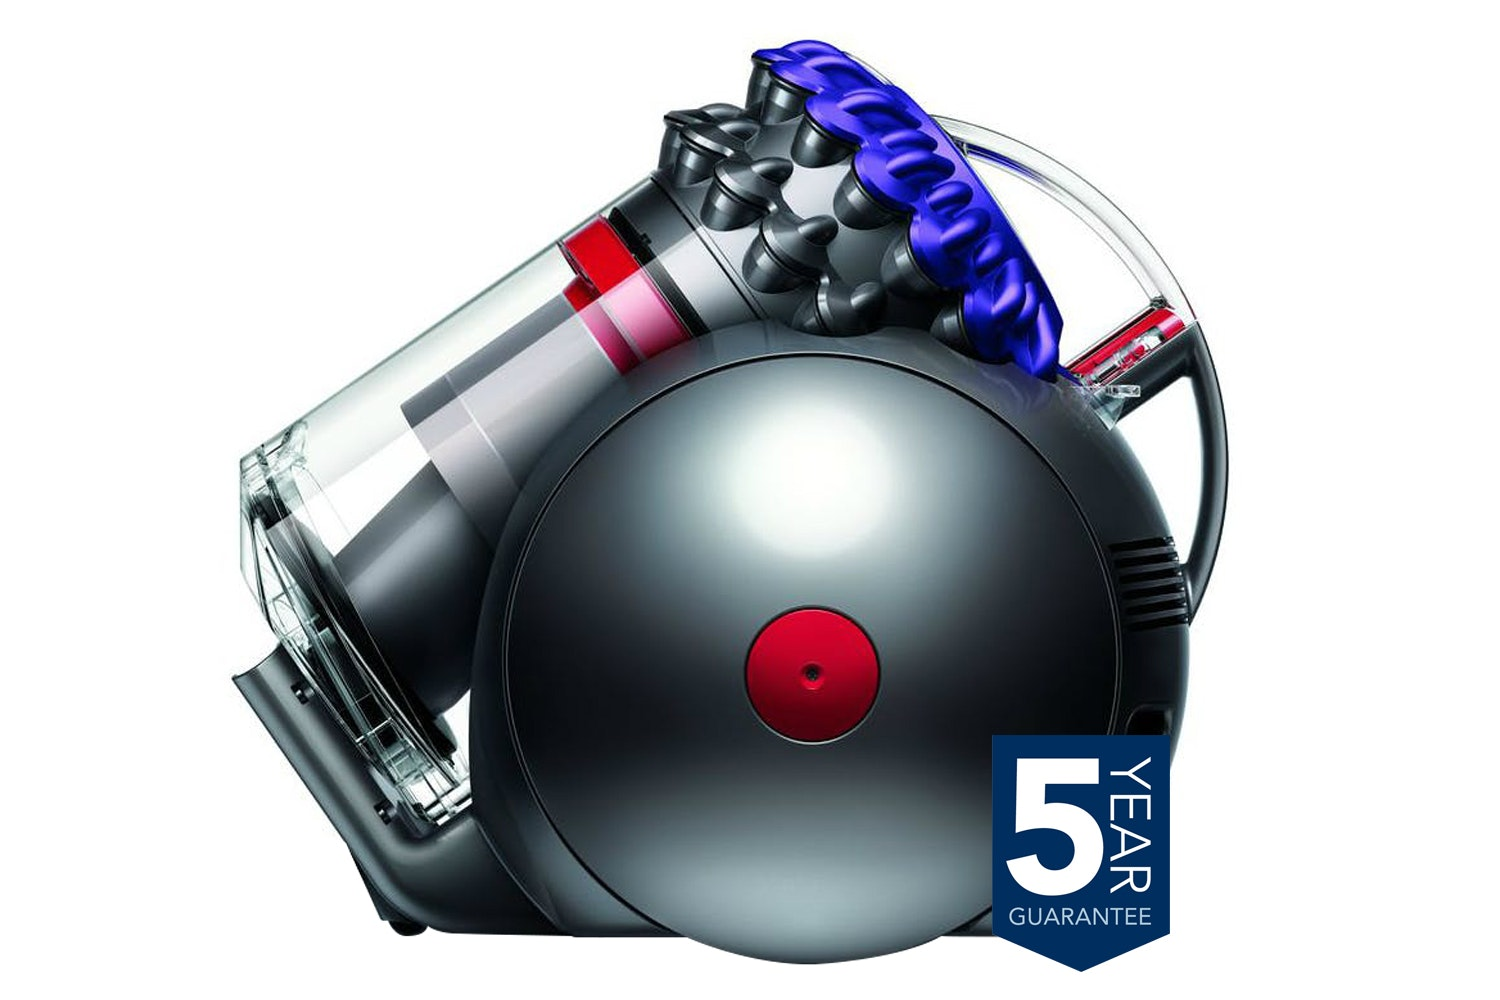 Dyson Big Ball Animal Cylinder Vacuum Cleaner | 211825-01